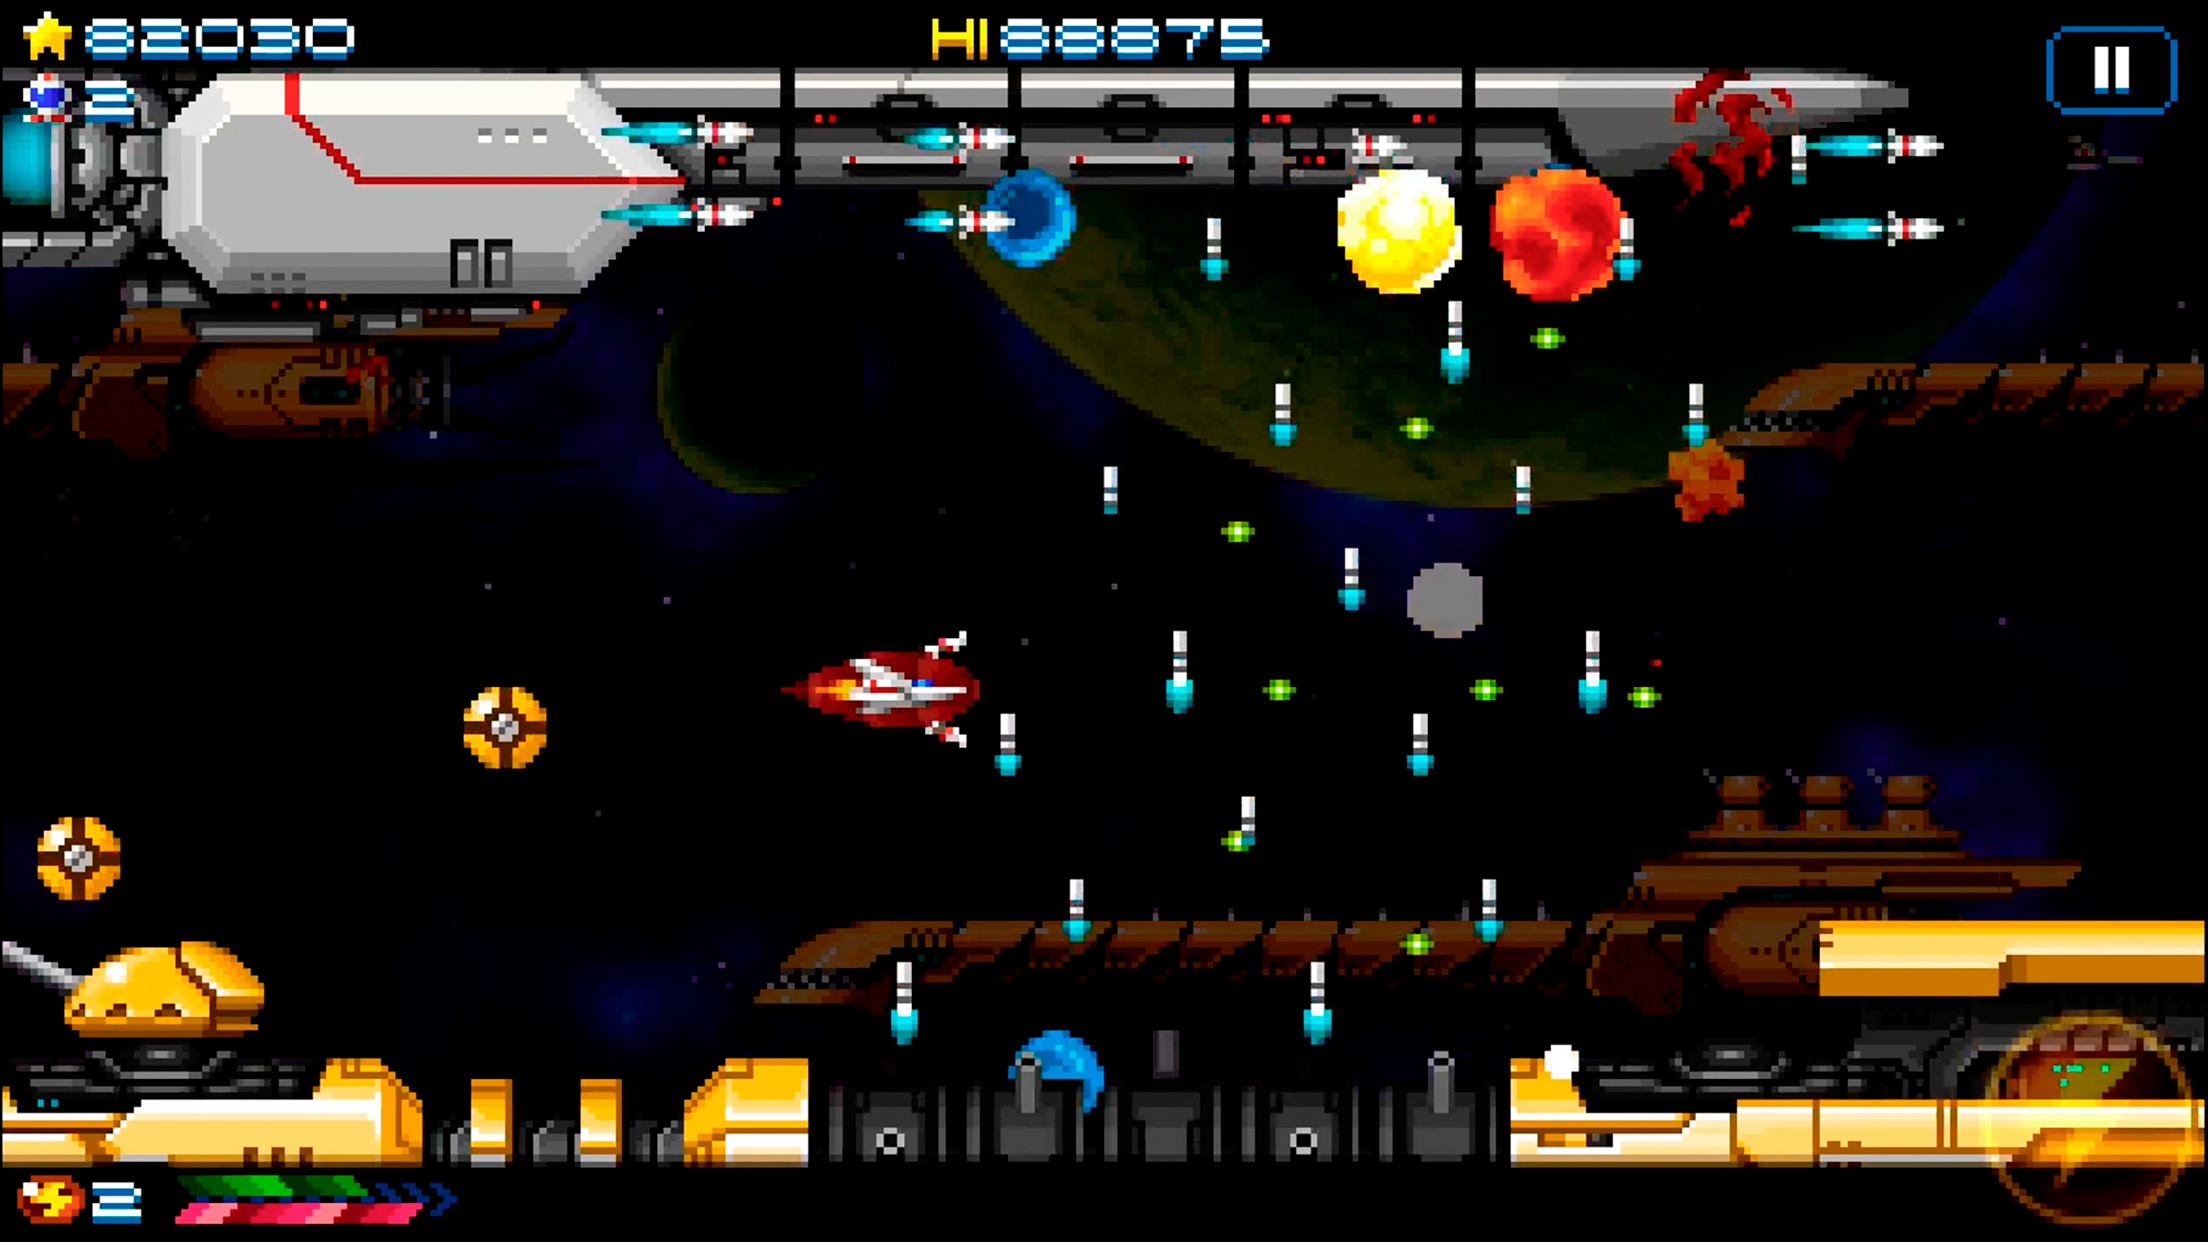 super hydorah screenshot iOS, shmup, shoot'em up, arcade, indie, mobile